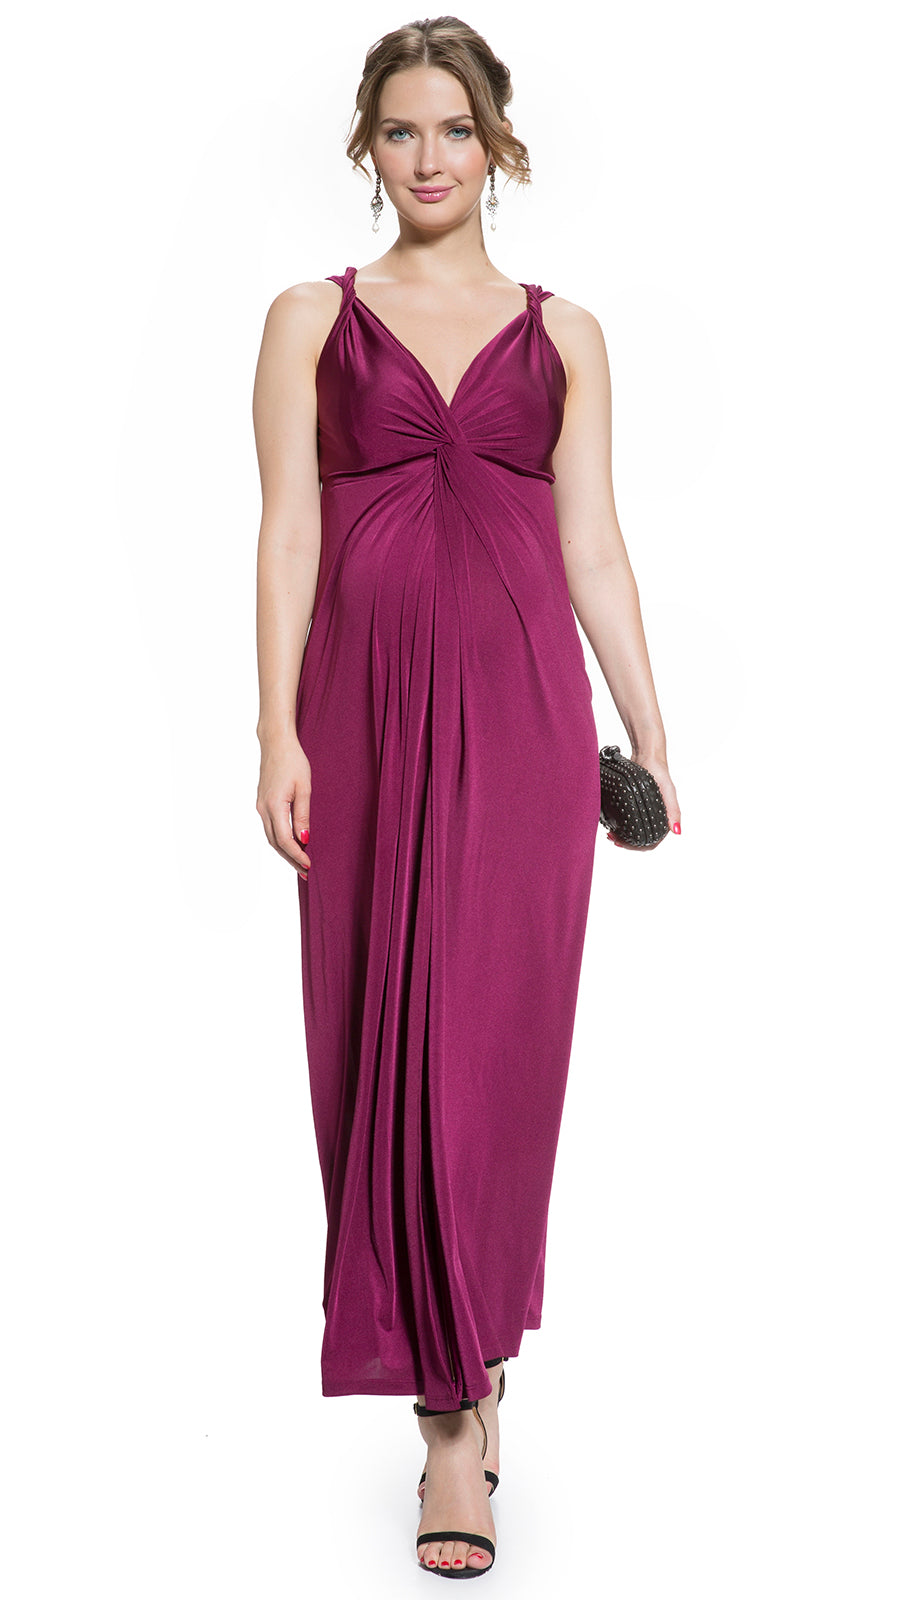 9e40c579fe Maternity Maxi Dresses   Stylish Pregnancy Party Gowns - Mayarya ...